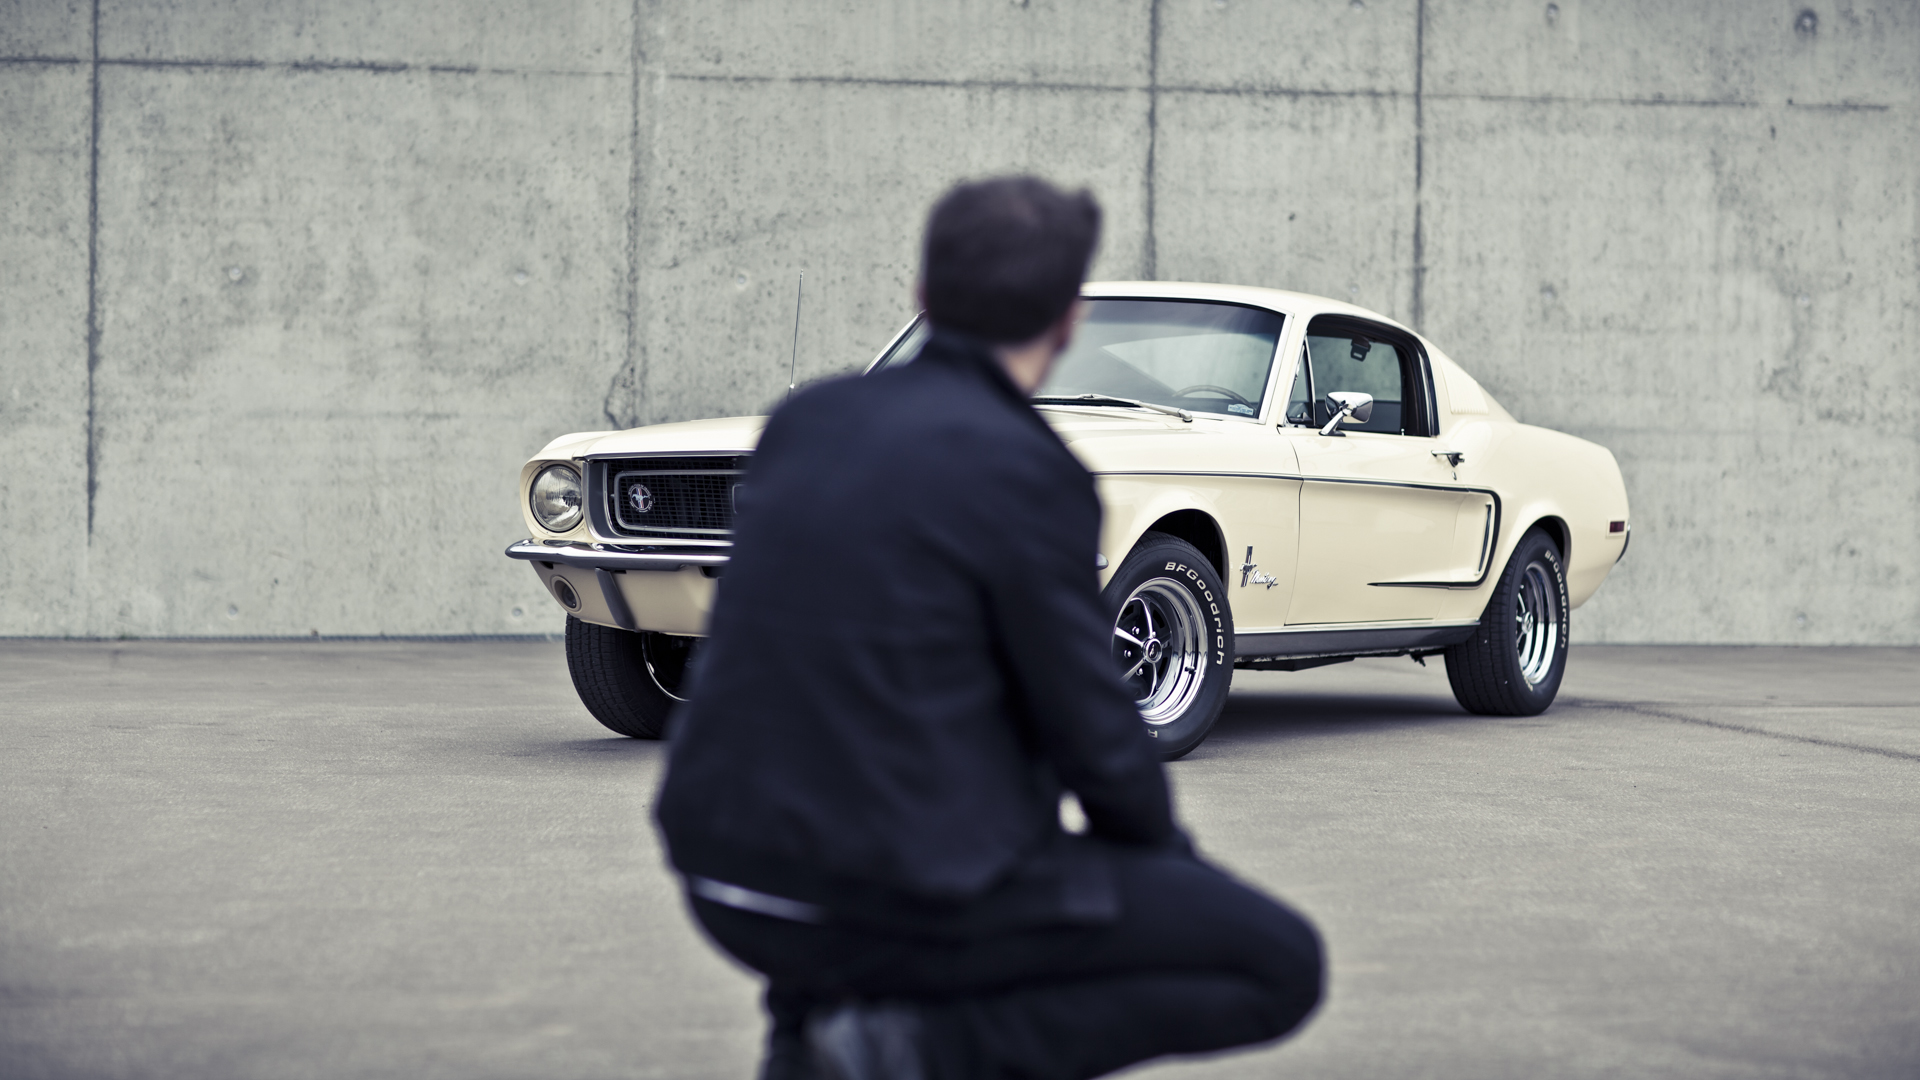 Pascal & his Ford Mustang / Laurent Nivalle (12)